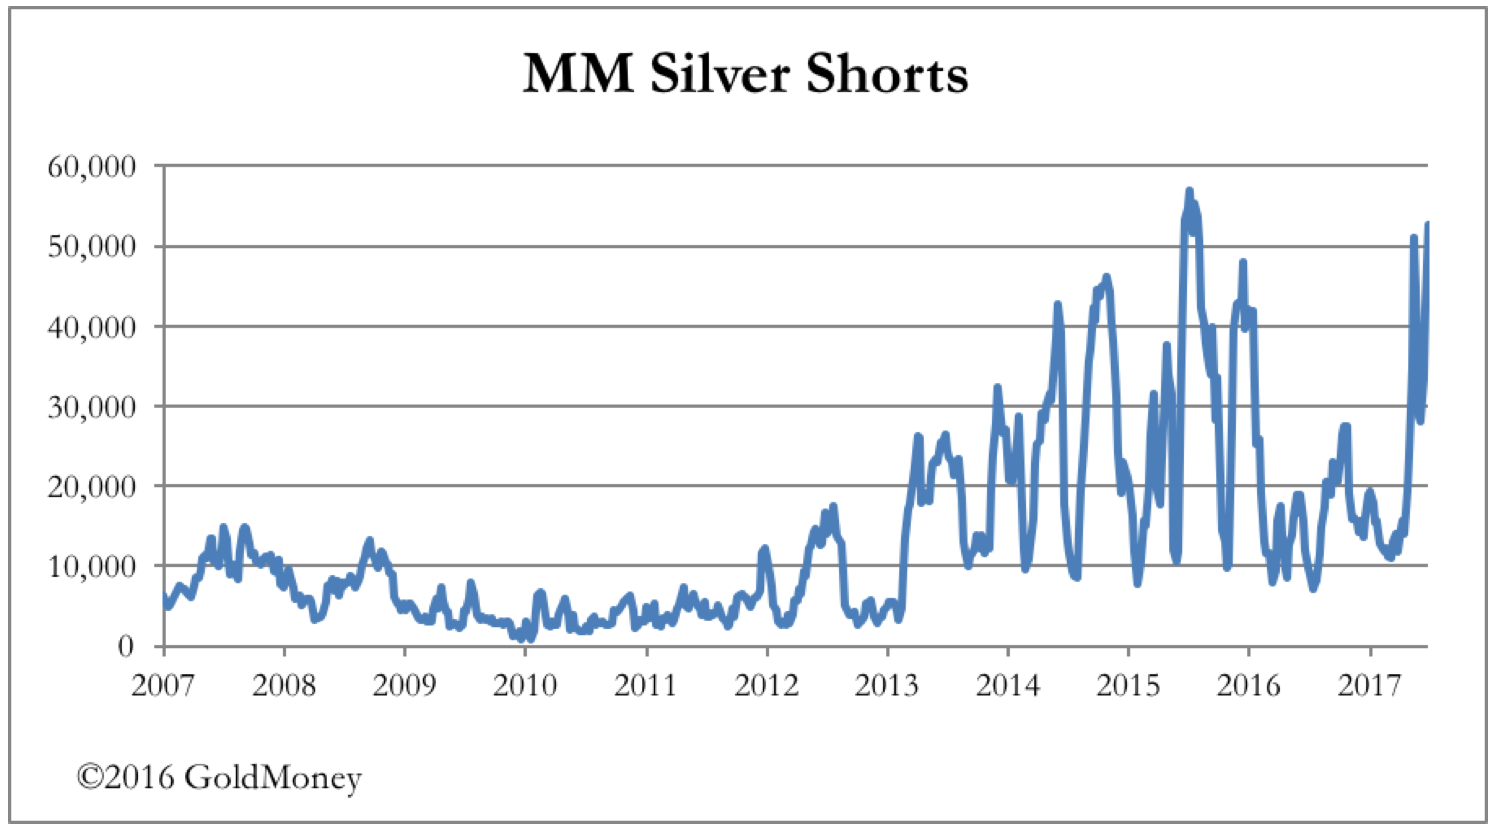 Silver futures contracts